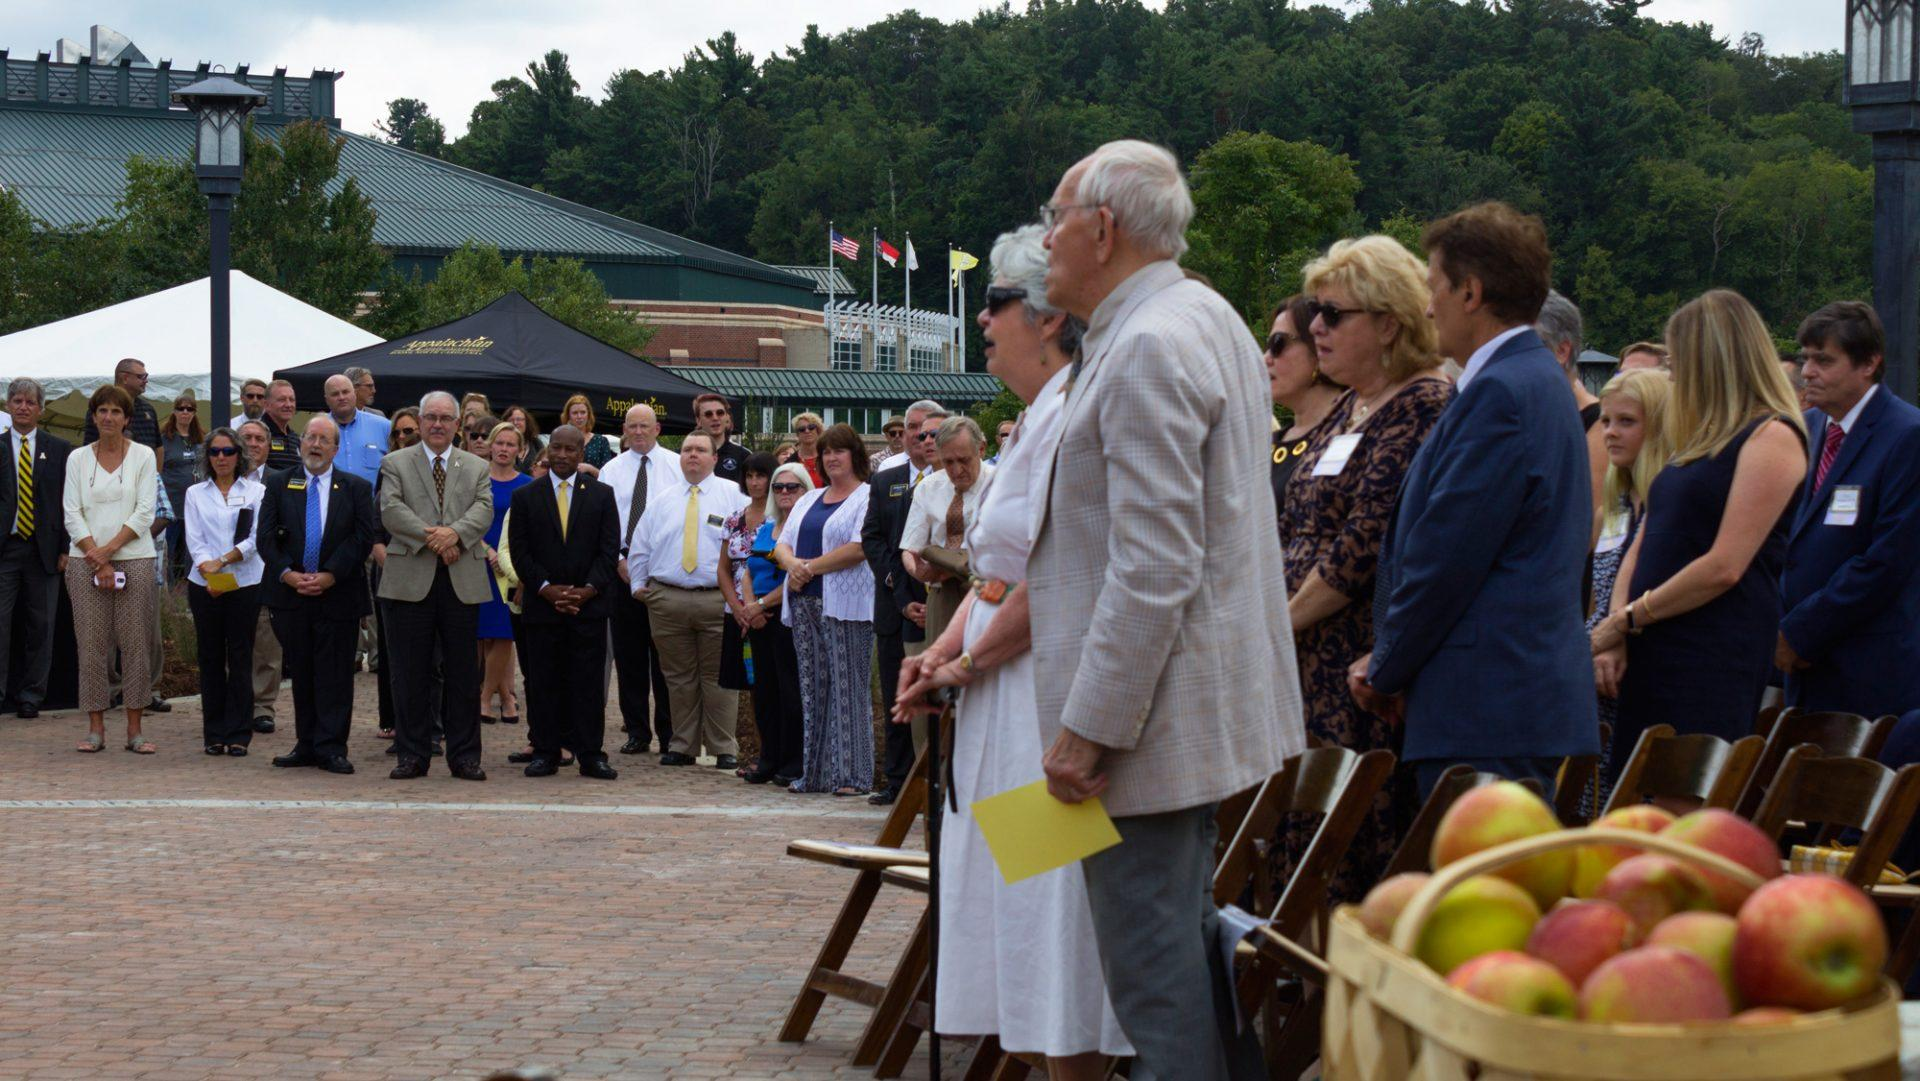 Founders Plaza commemorates Dougherty family